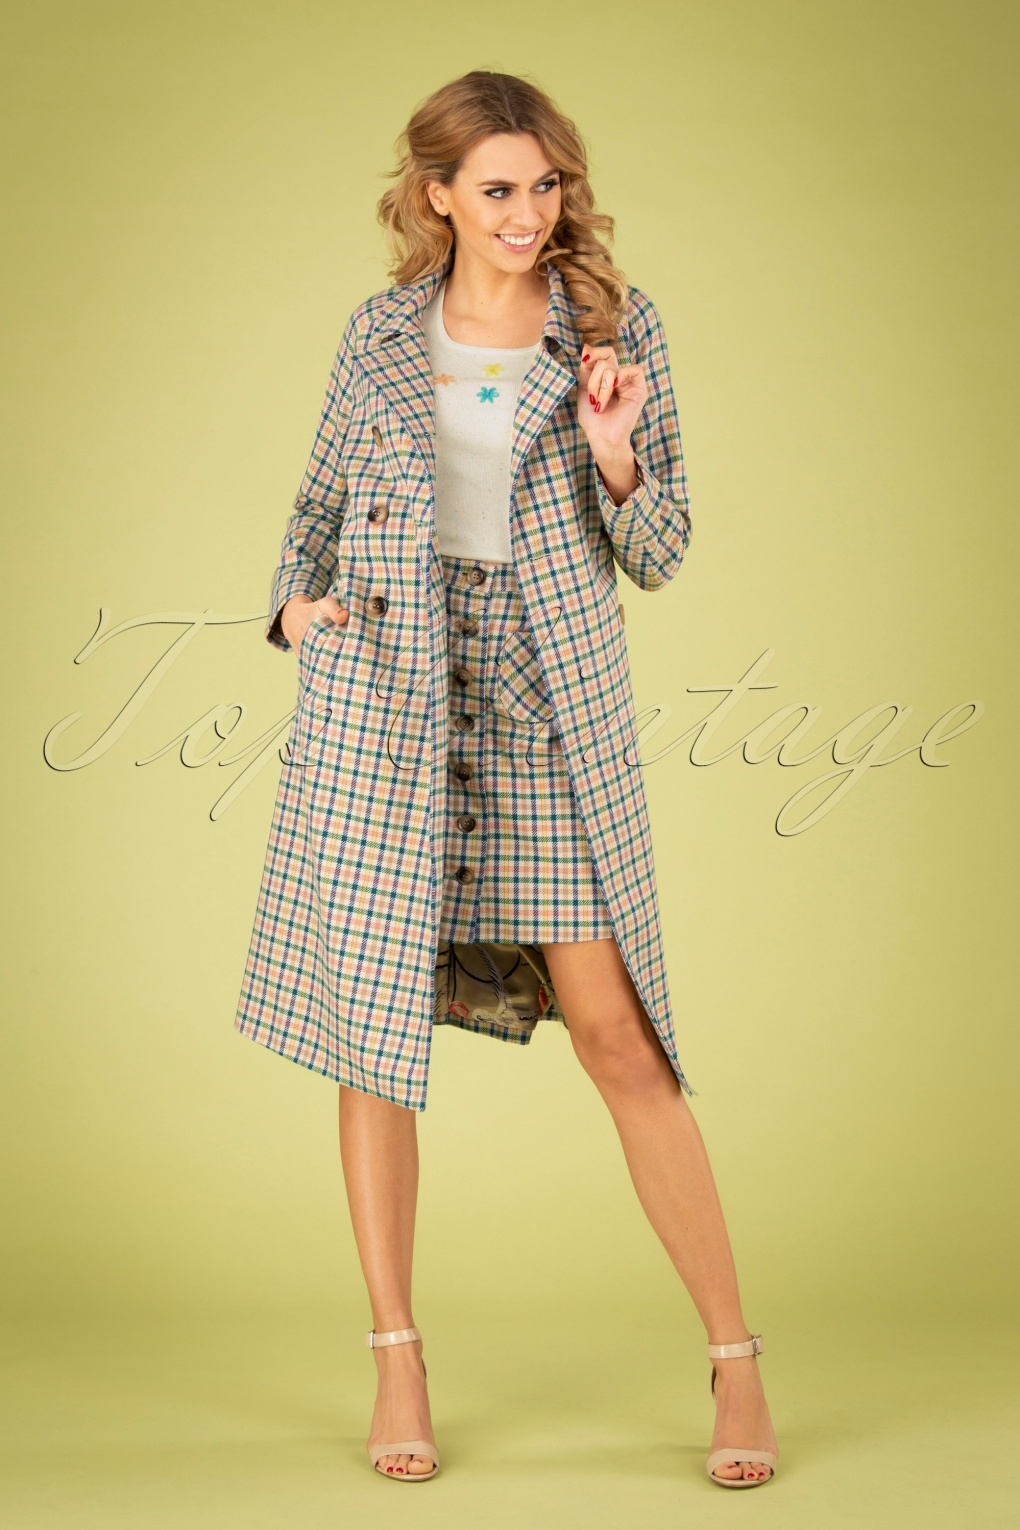 60s Fancy Dress and Quality Clothing 1960s UK 60s Edith Maverick Check Coat in Marzipan £19.95 AT vintagedancer.com